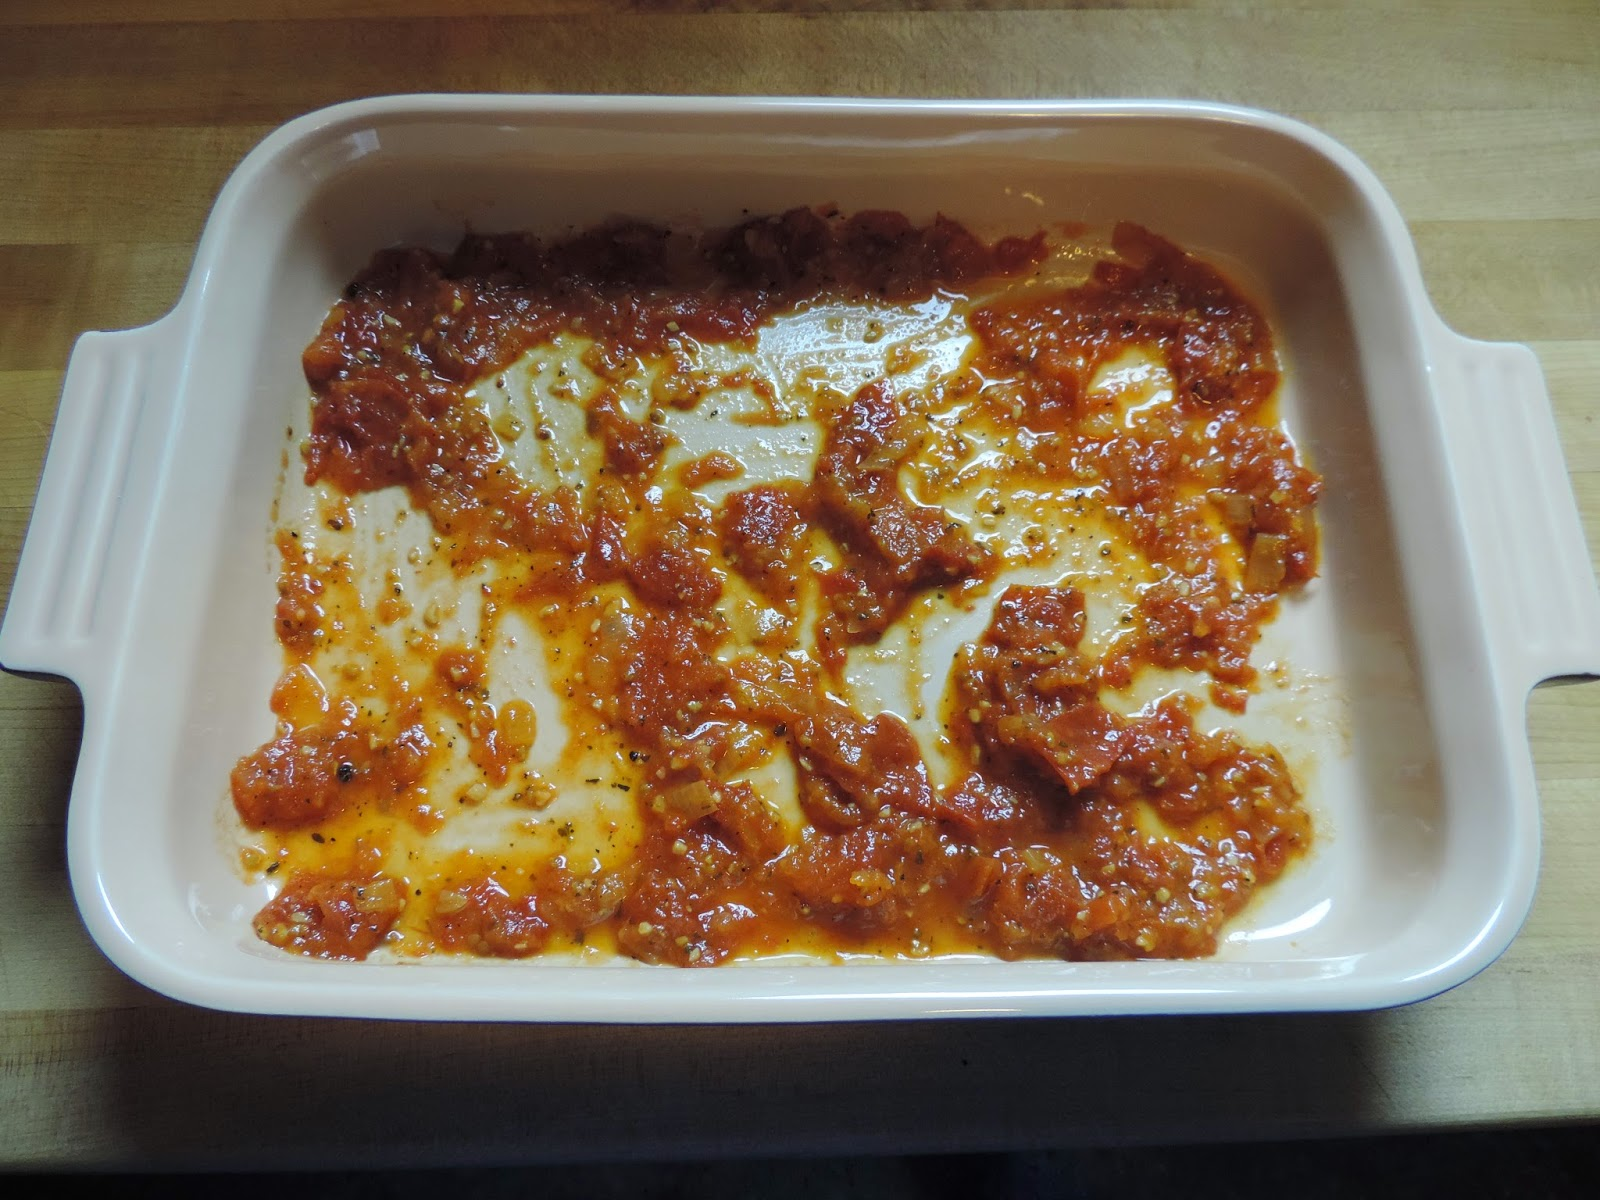 The sauce being added to the bottom of a baking dish.